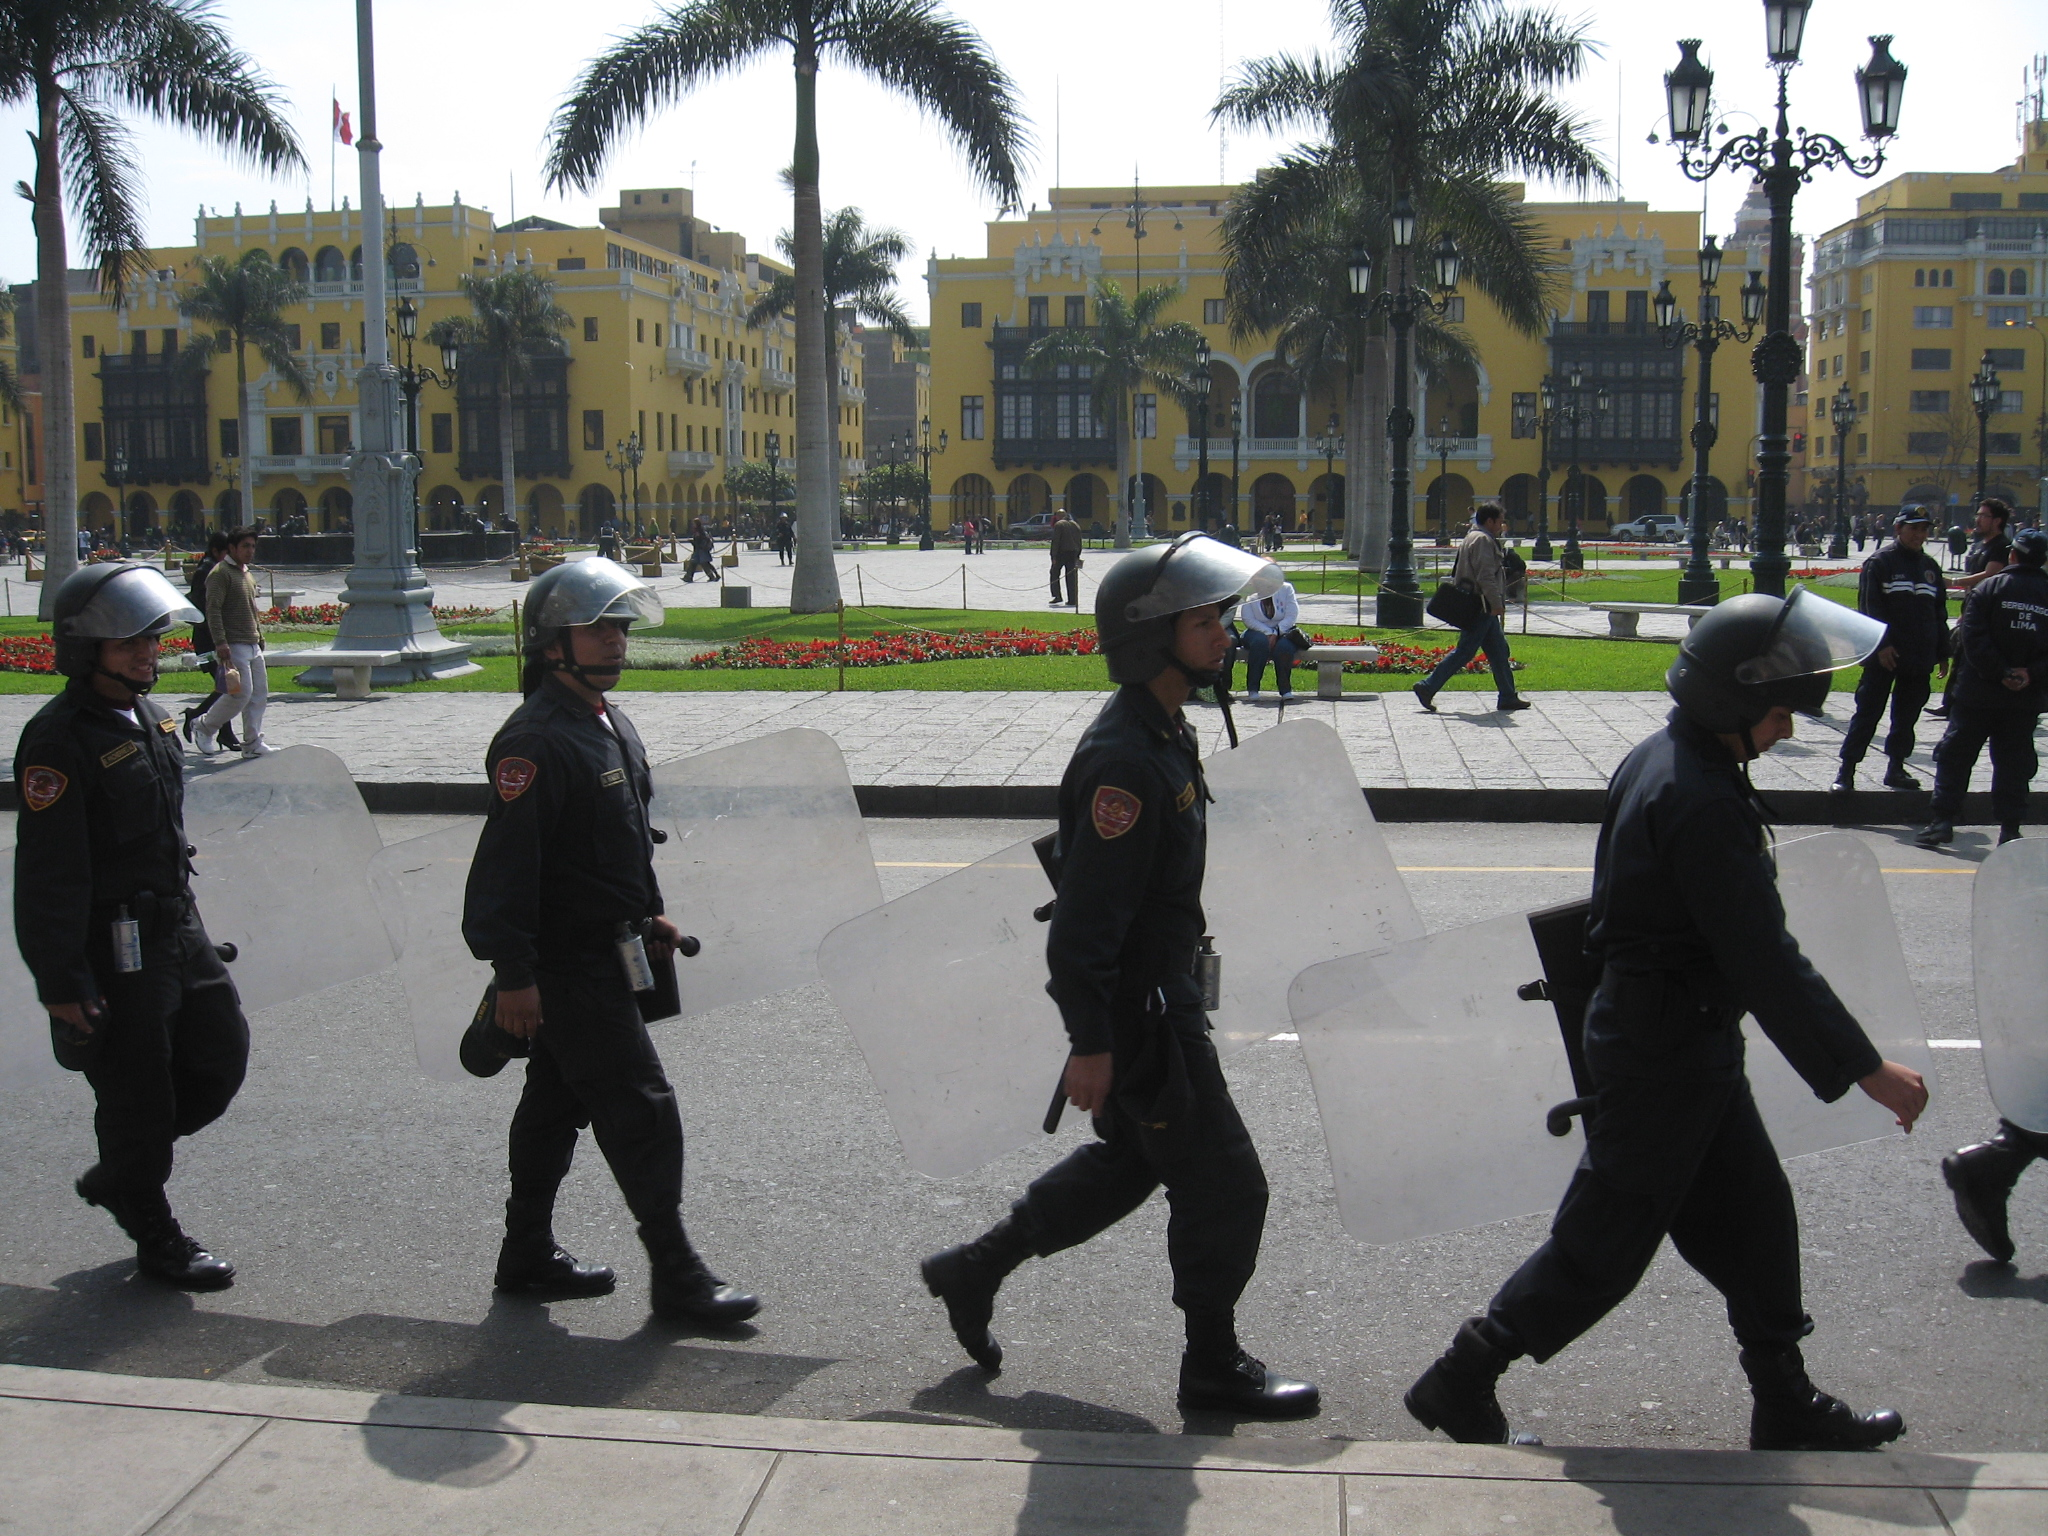 Riot police march on the square in Lima